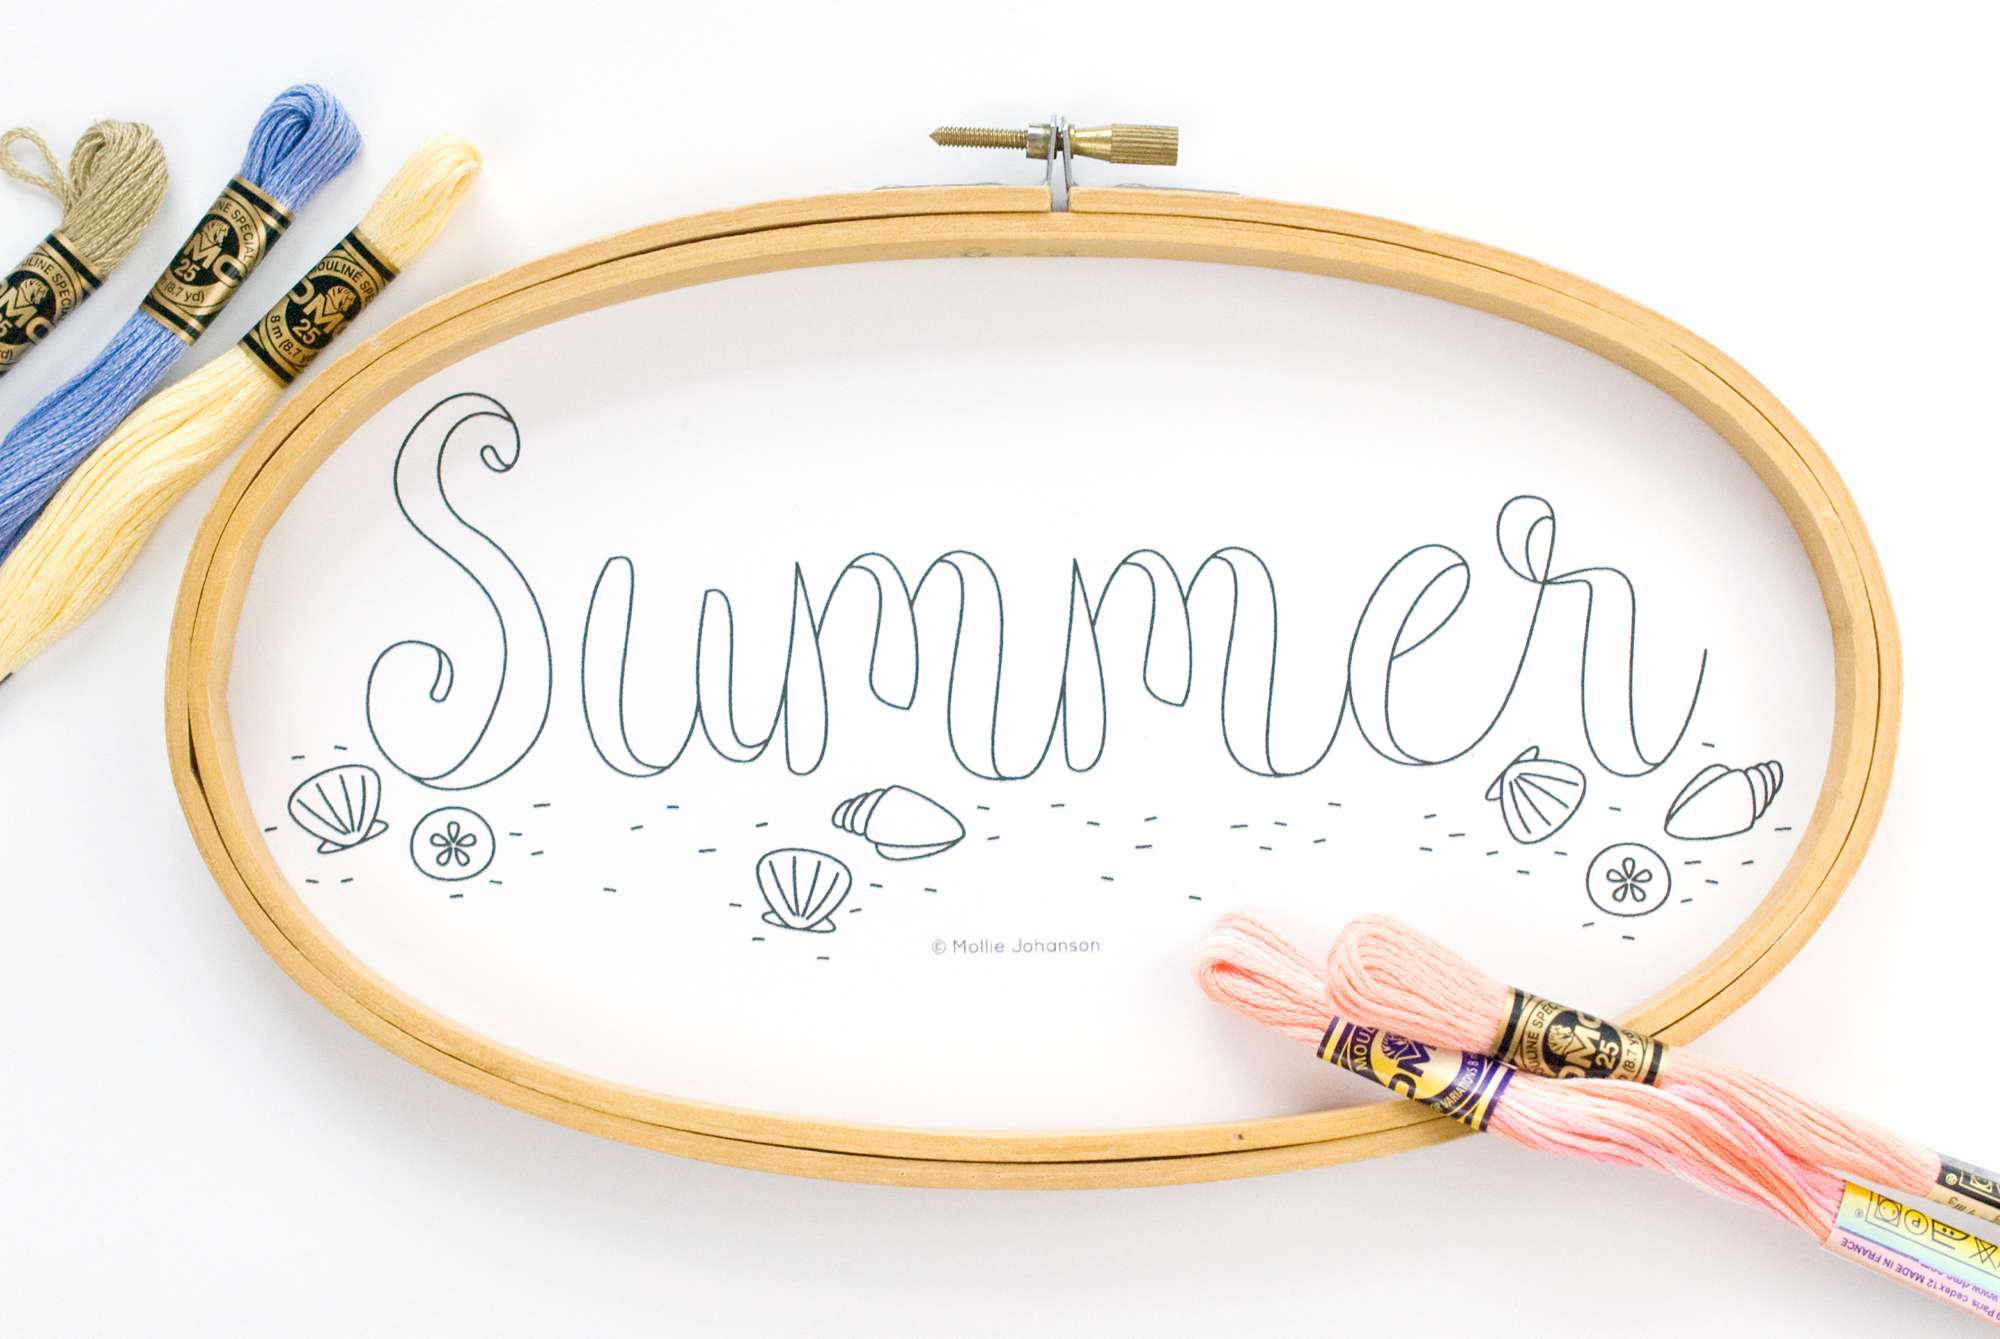 Nautical Embroidery Patterns Beachy Summer Word Art Embroidery Pattern